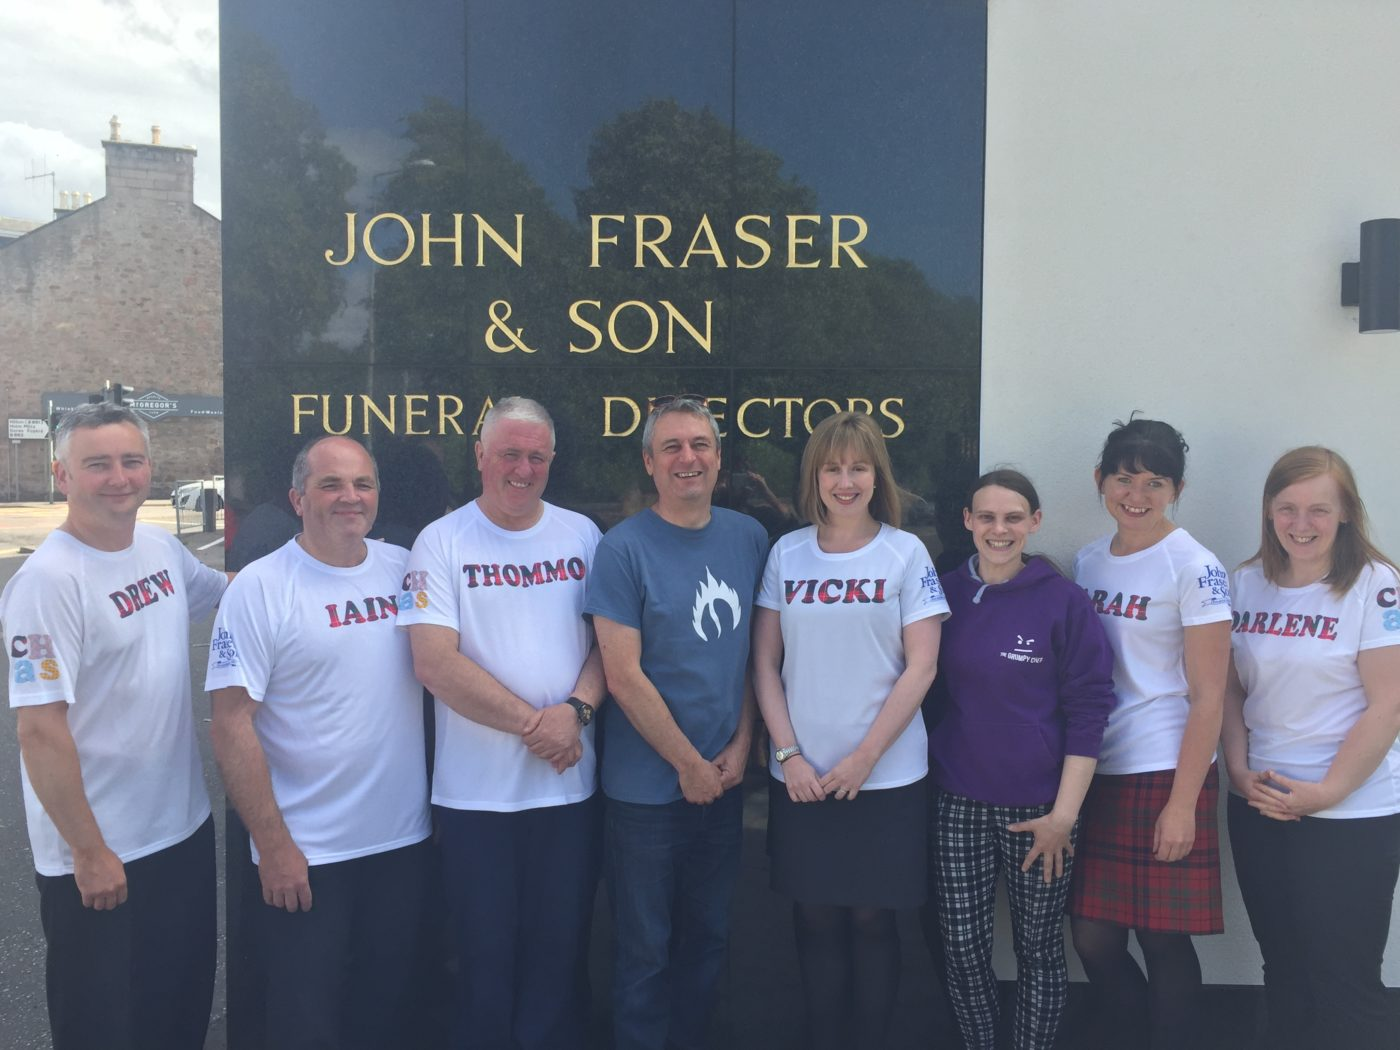 John Fraser & Son 10K 'Runners' with Kevin from the Inverness Coffee Roasting Co. and Elena from the Grumpy Chef